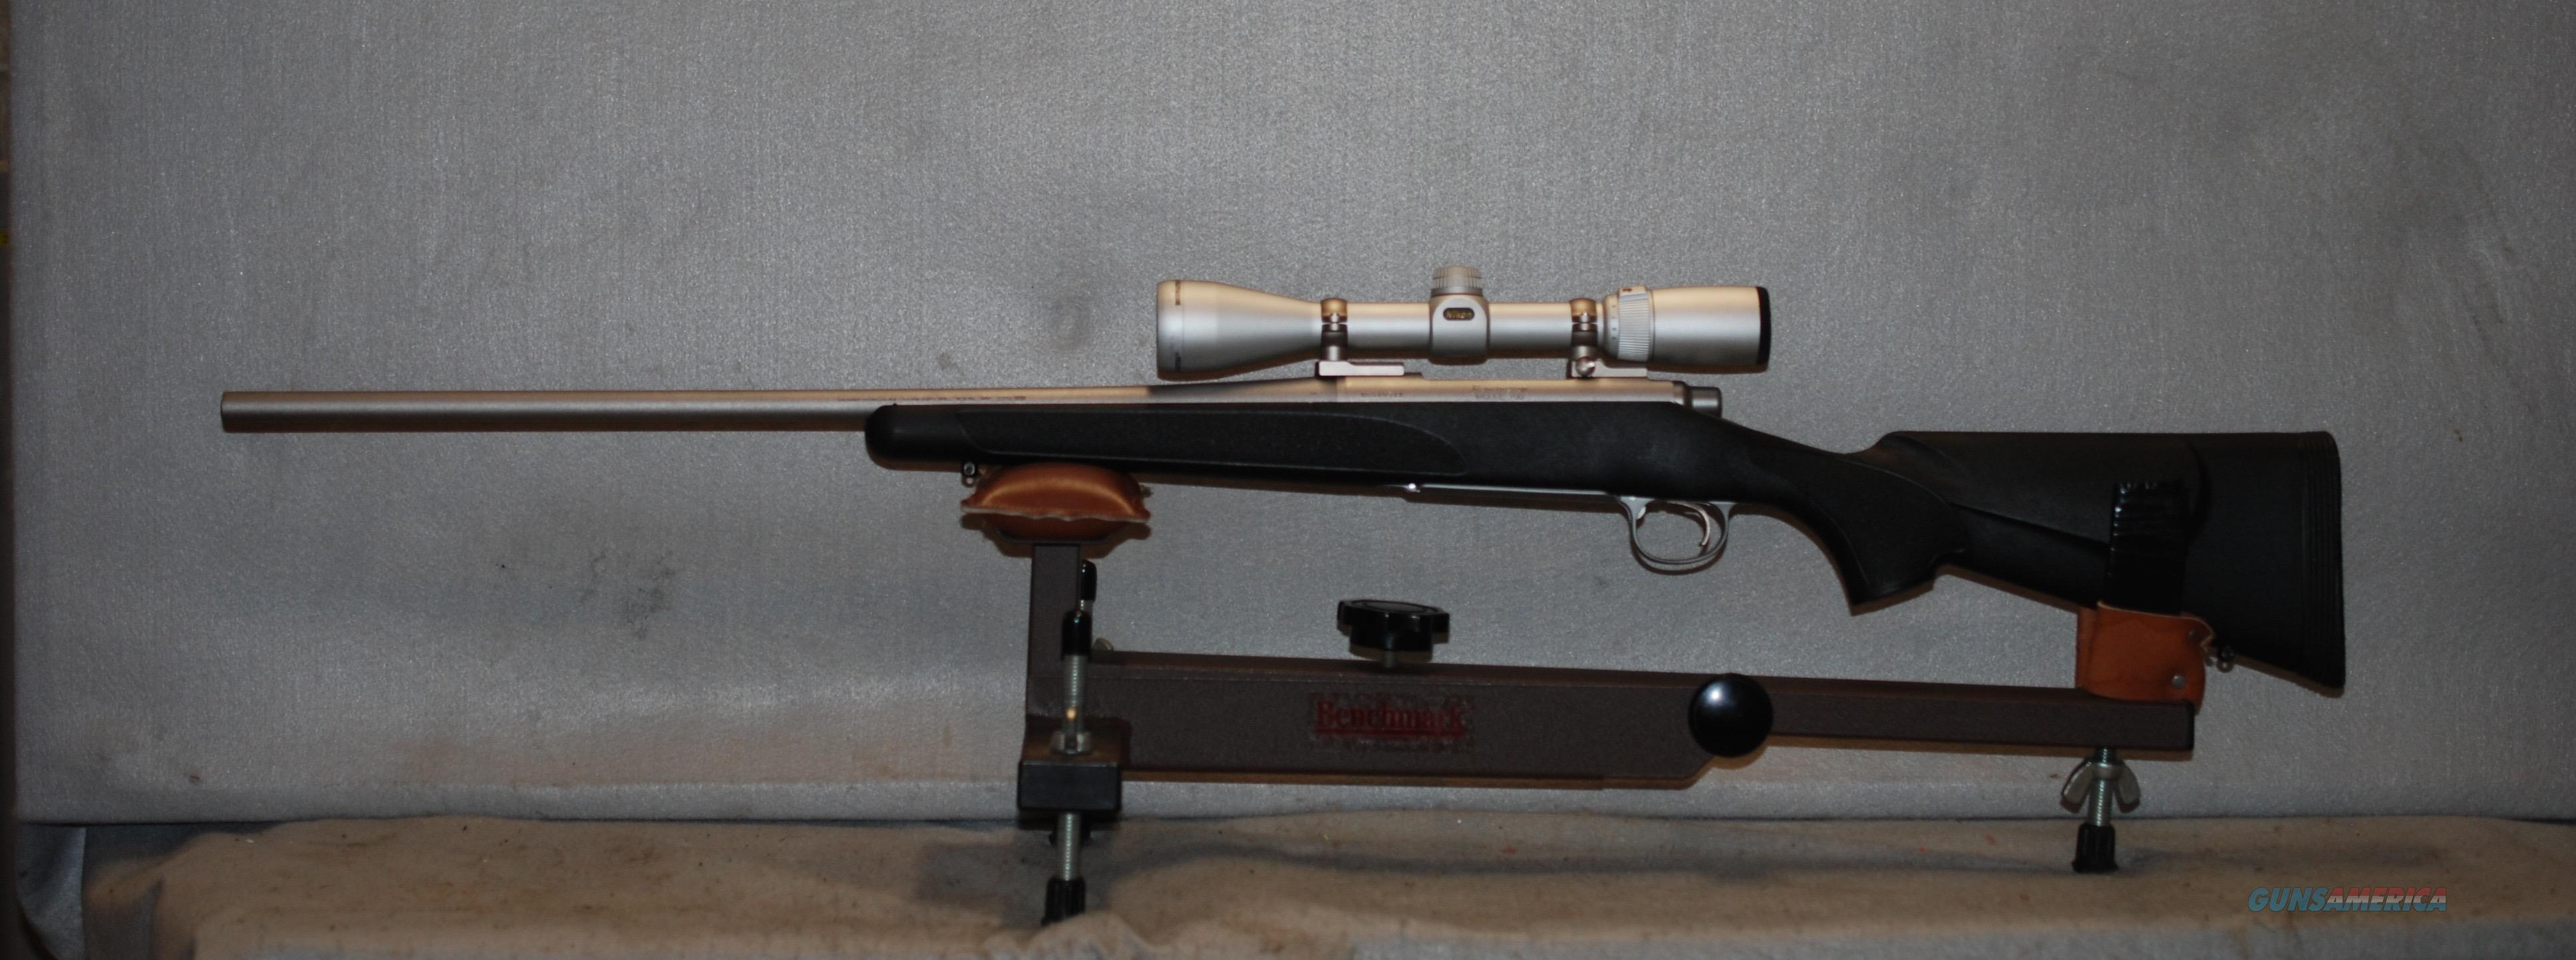 Remington 700, 270 Winchester, new and unfired  Guns > Rifles > Remington Rifles - Modern > Model 700 > Sporting